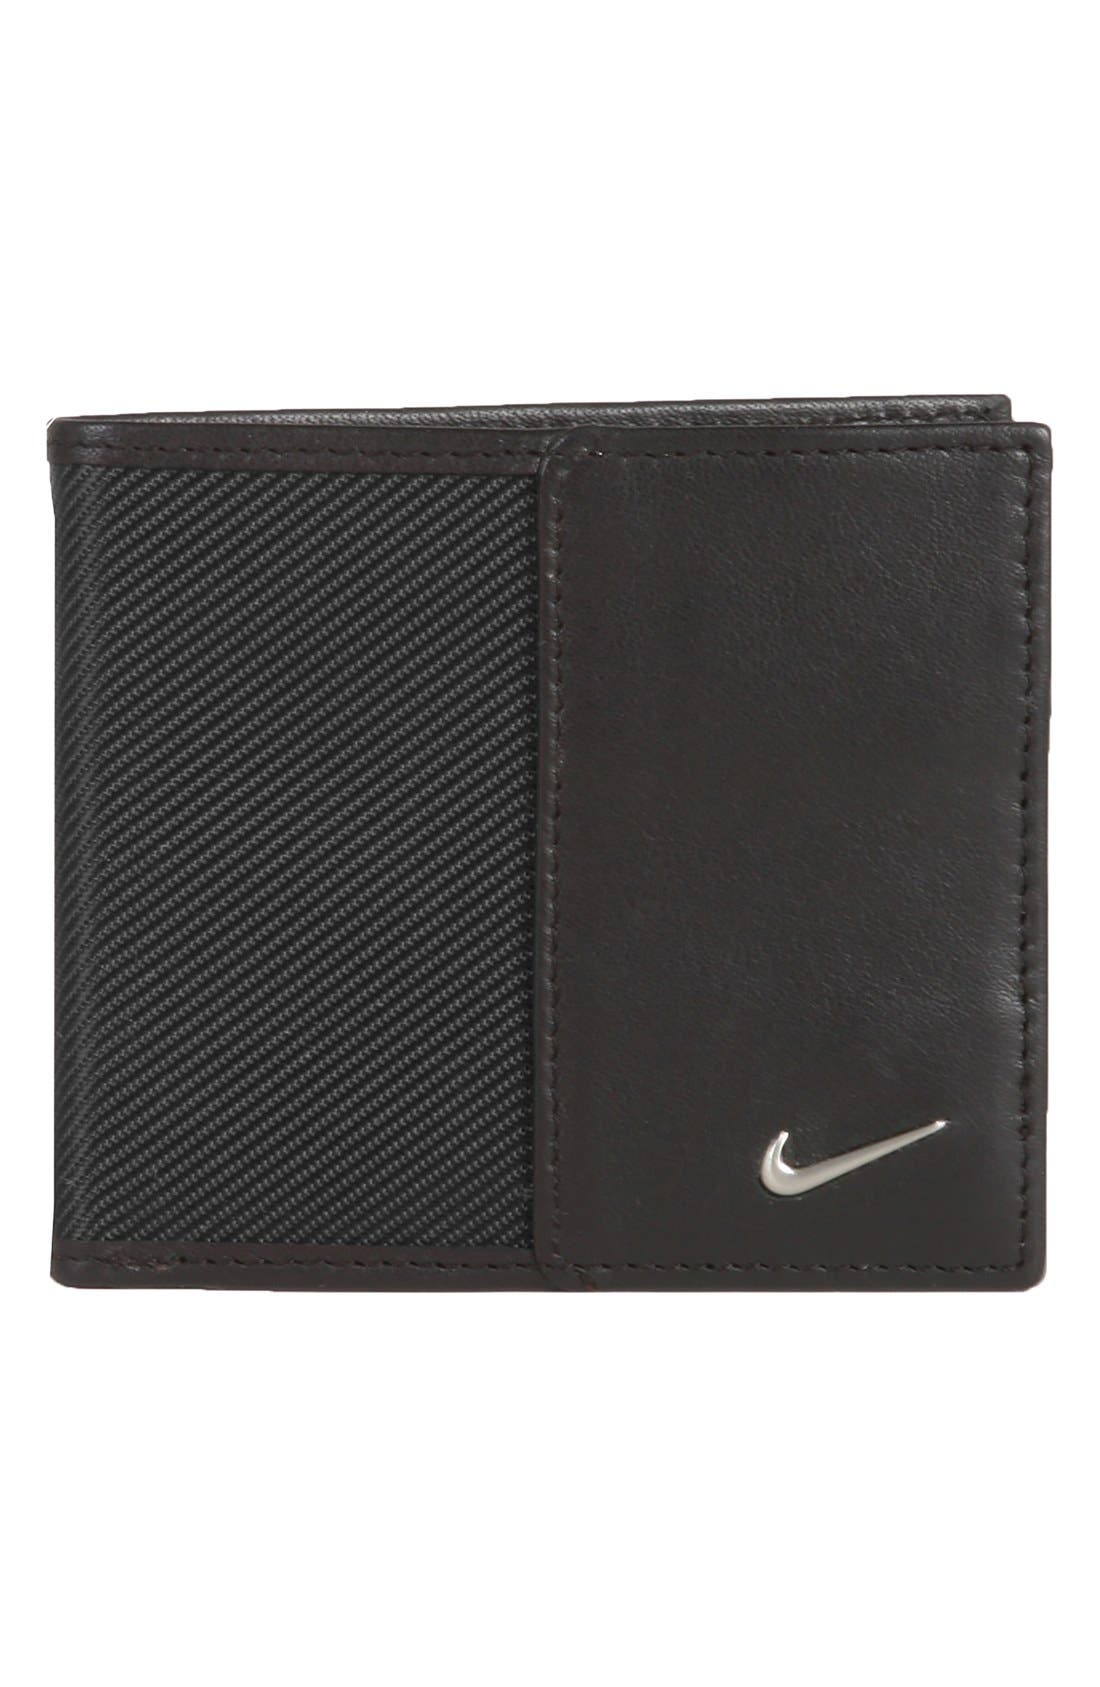 Main Image - Nike Leather Wallet